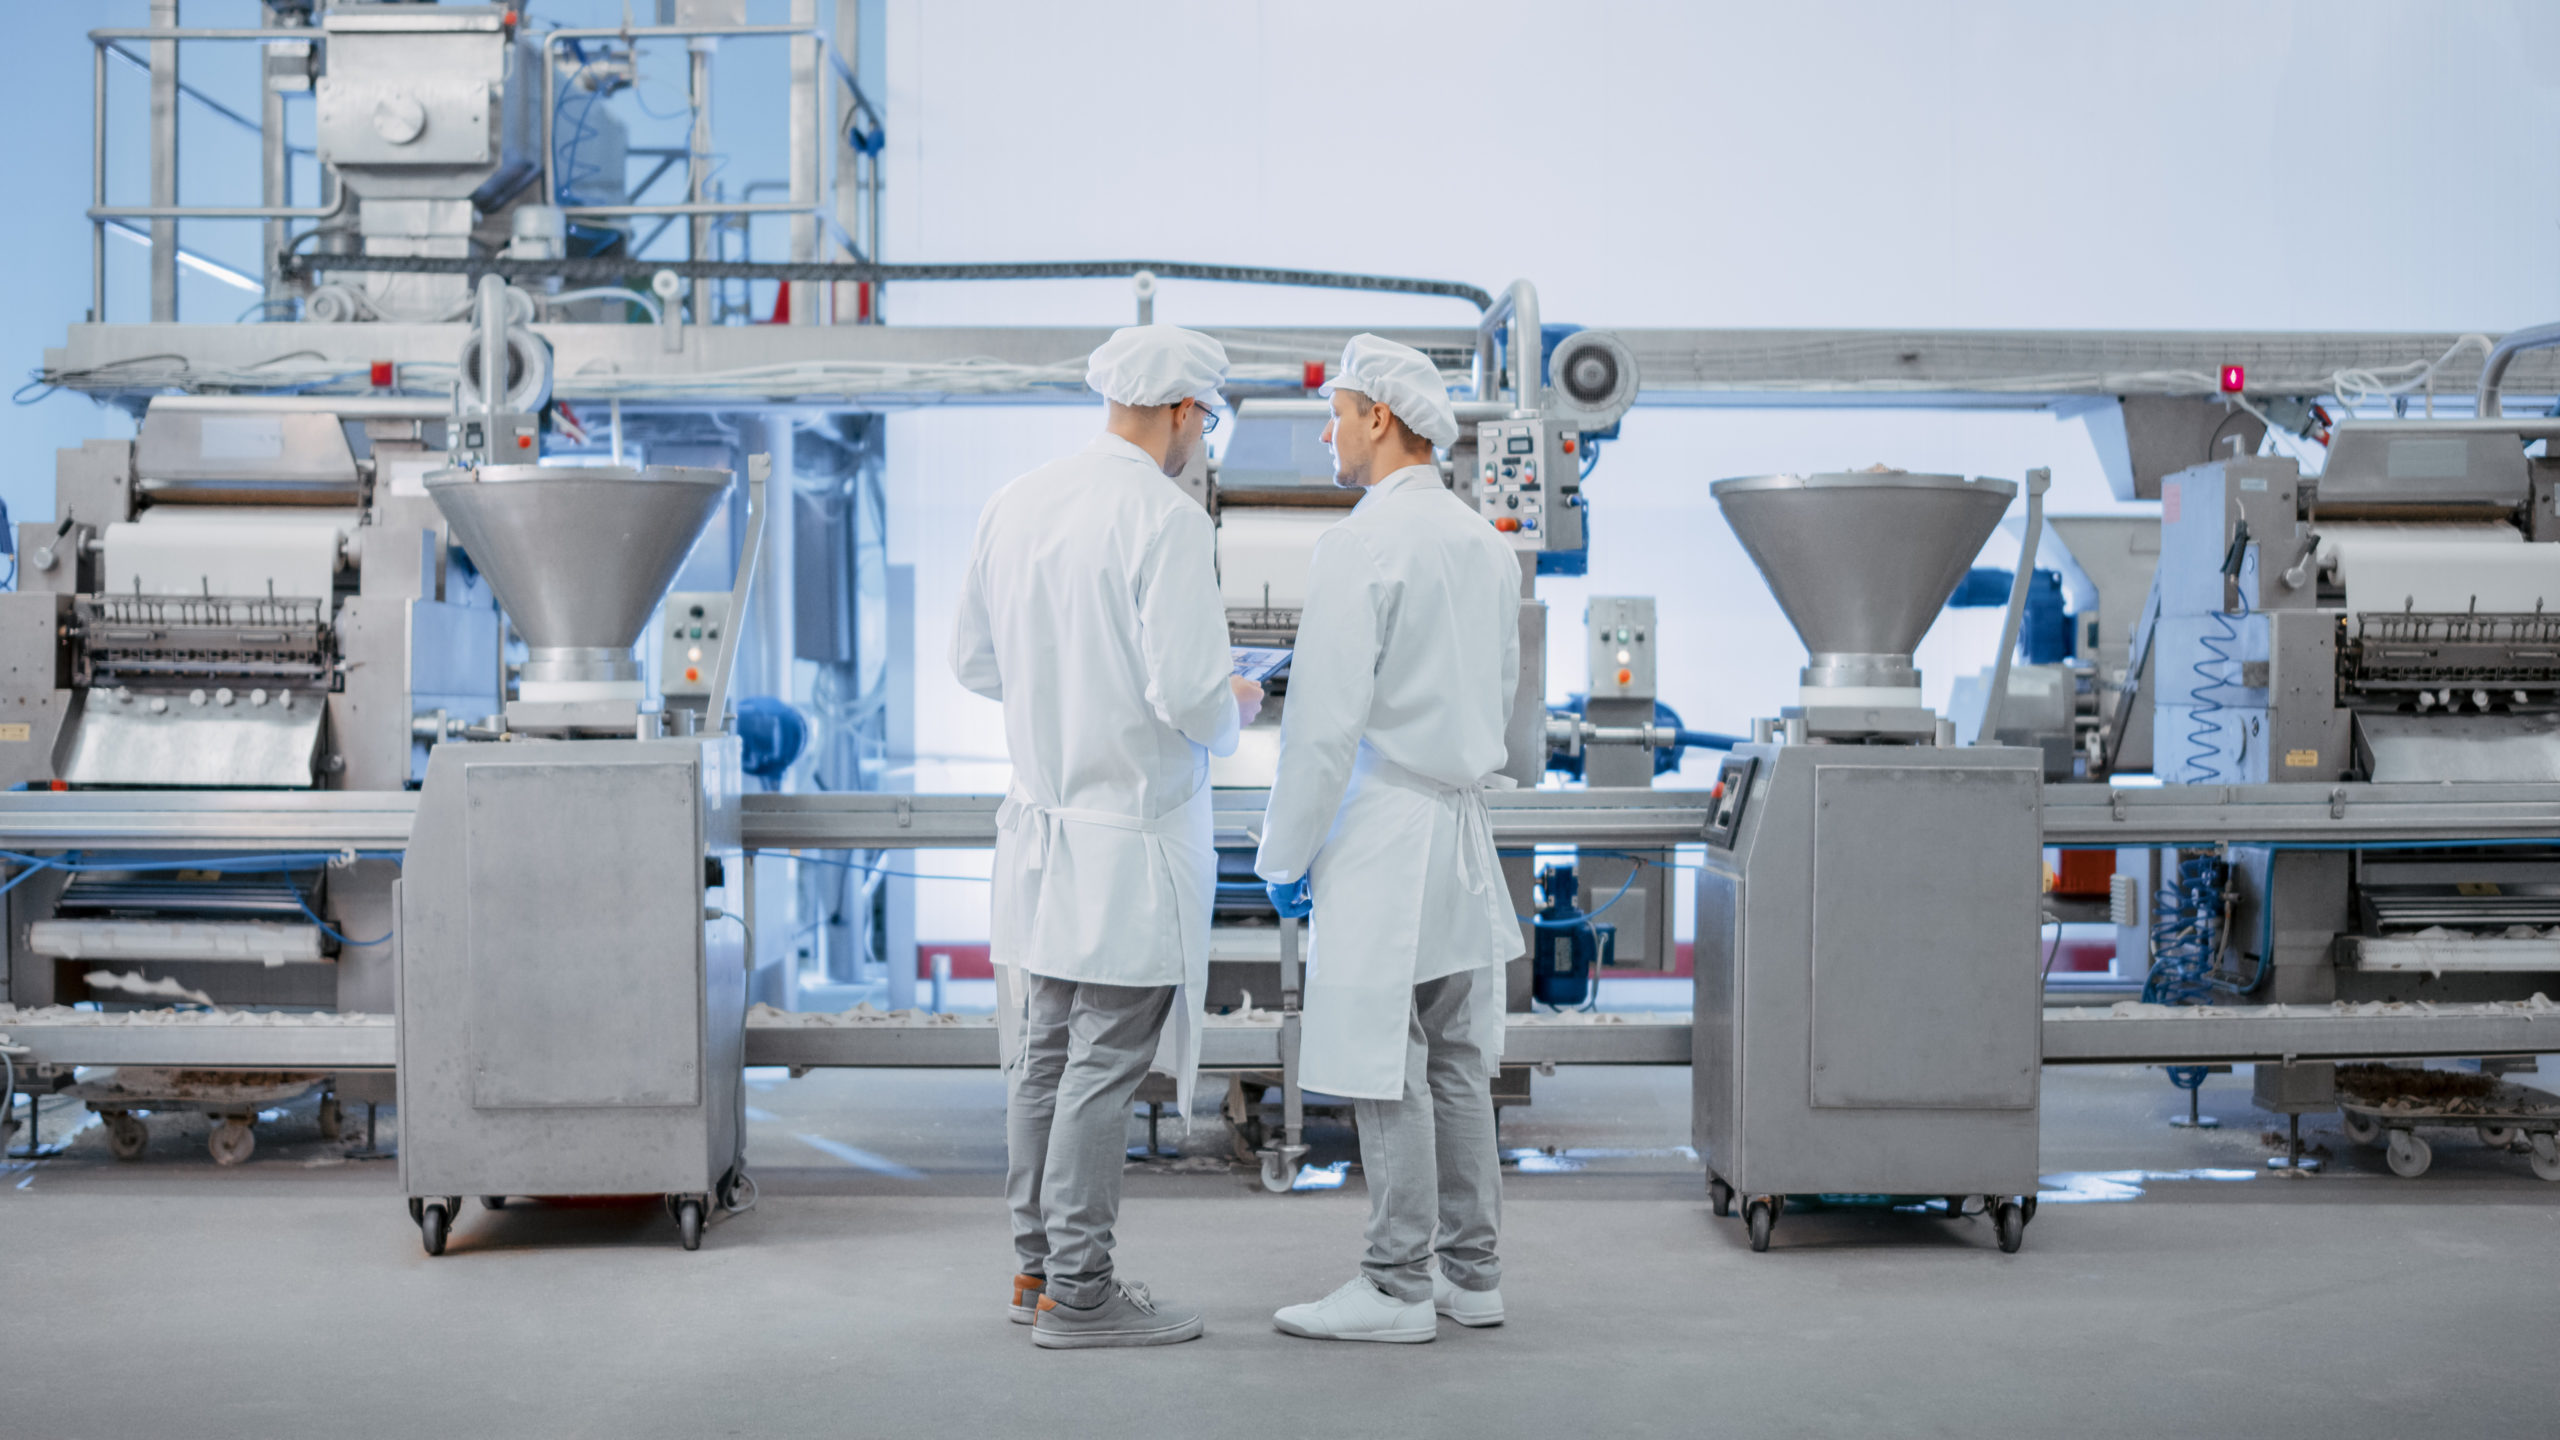 Two,Young,Food,Factory,Employees,Discuss,Work-related,Matters.,Male,Technician